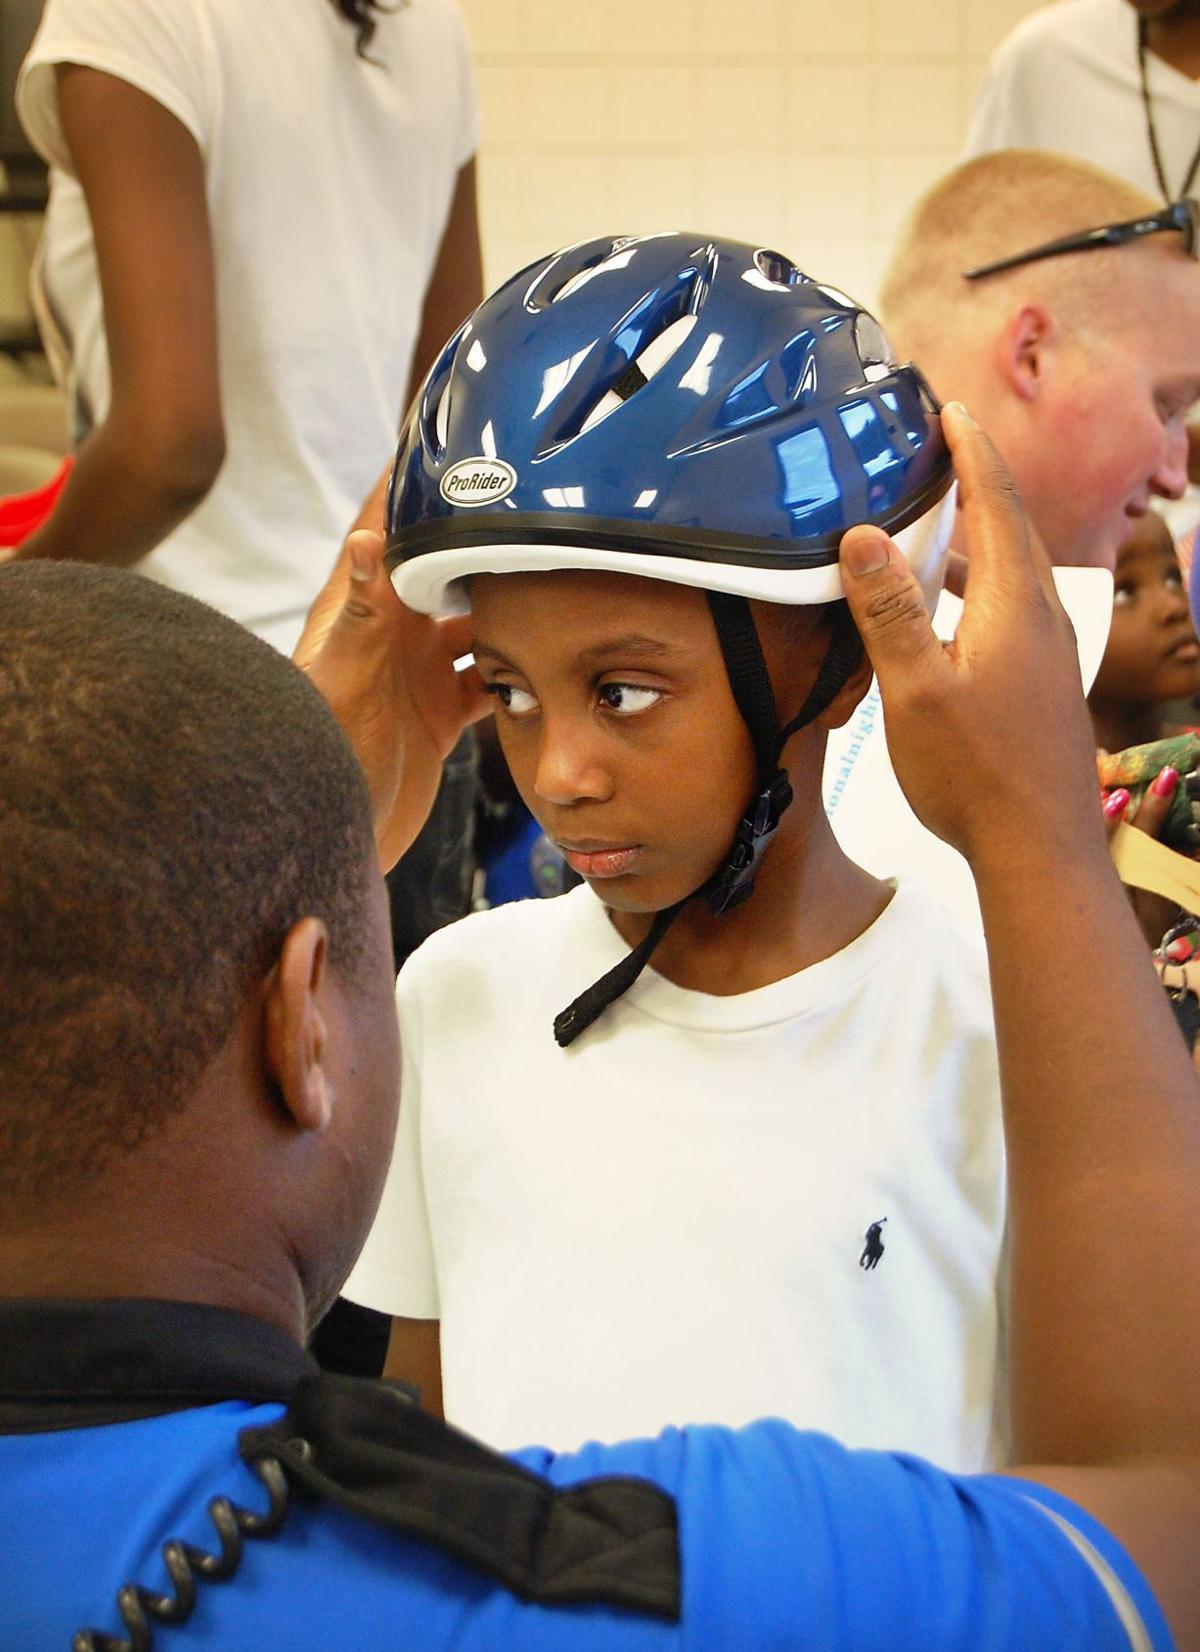 Law firm's brainy idea: free helmets for kids